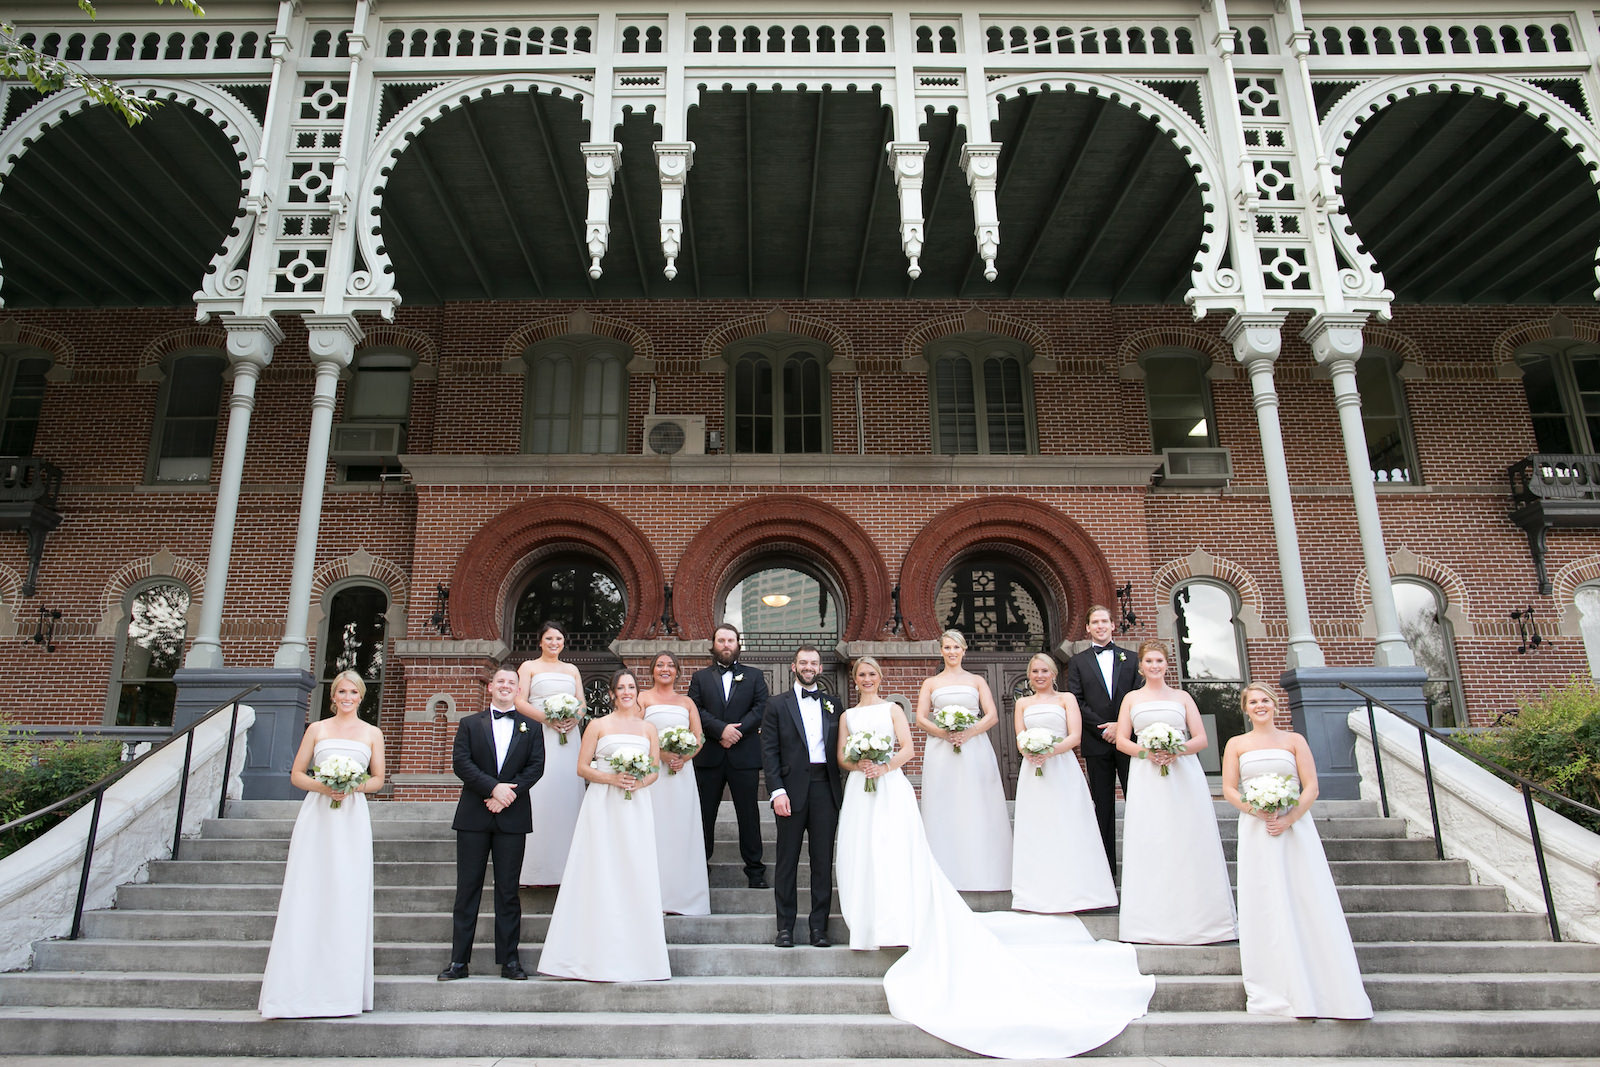 Wedding Party Outdoor Portrait in Downtown Tampa at Plant Museum UT | Bateau Neck Mikado Satin Martina Liana Simple Elegant Wedding Dress with Buttons Down Back | Groom and Groomsmen in Classic Black Tux | Neutral White Rose and Greenery Bouquets | Strapless Taupe Neutral Bridesmaid Dresses by Amsale | Carrie Wildes Photography